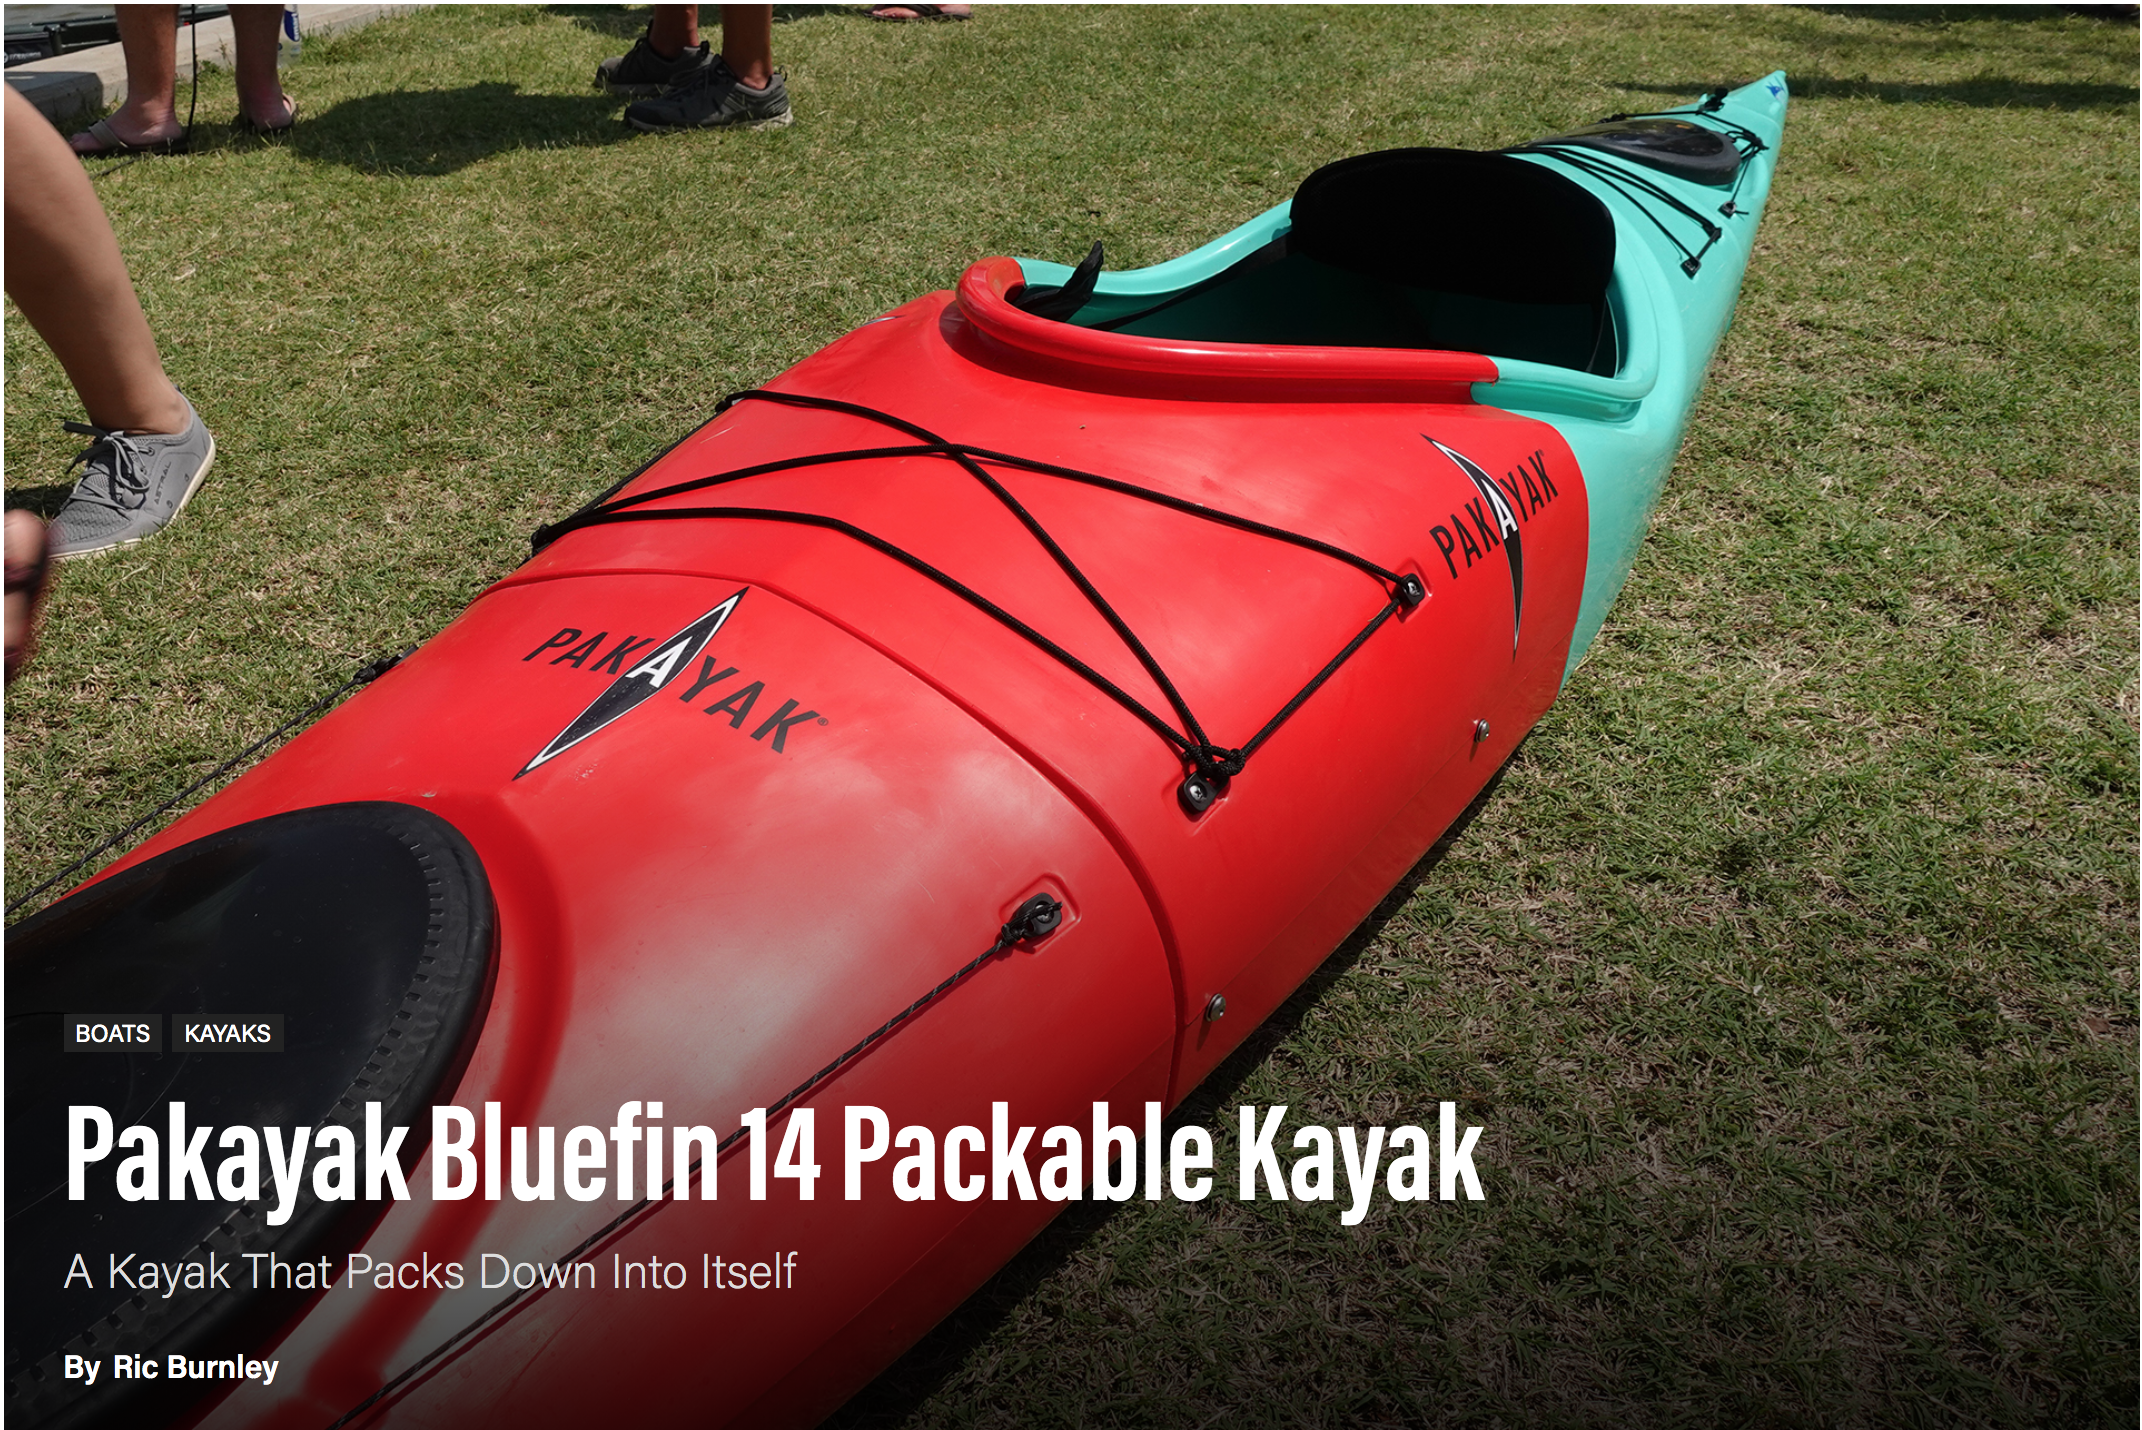 Paddling Magazine: Pakayak Bluefin 14 Packable Kayak – A Kayak That Packs Down Into Itself